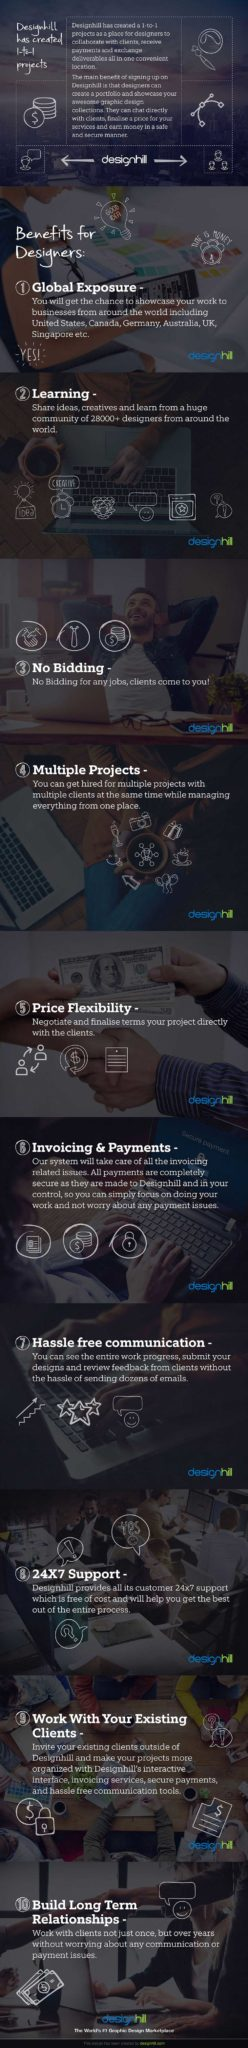 One_to_One_Projects_for_freelance_designers